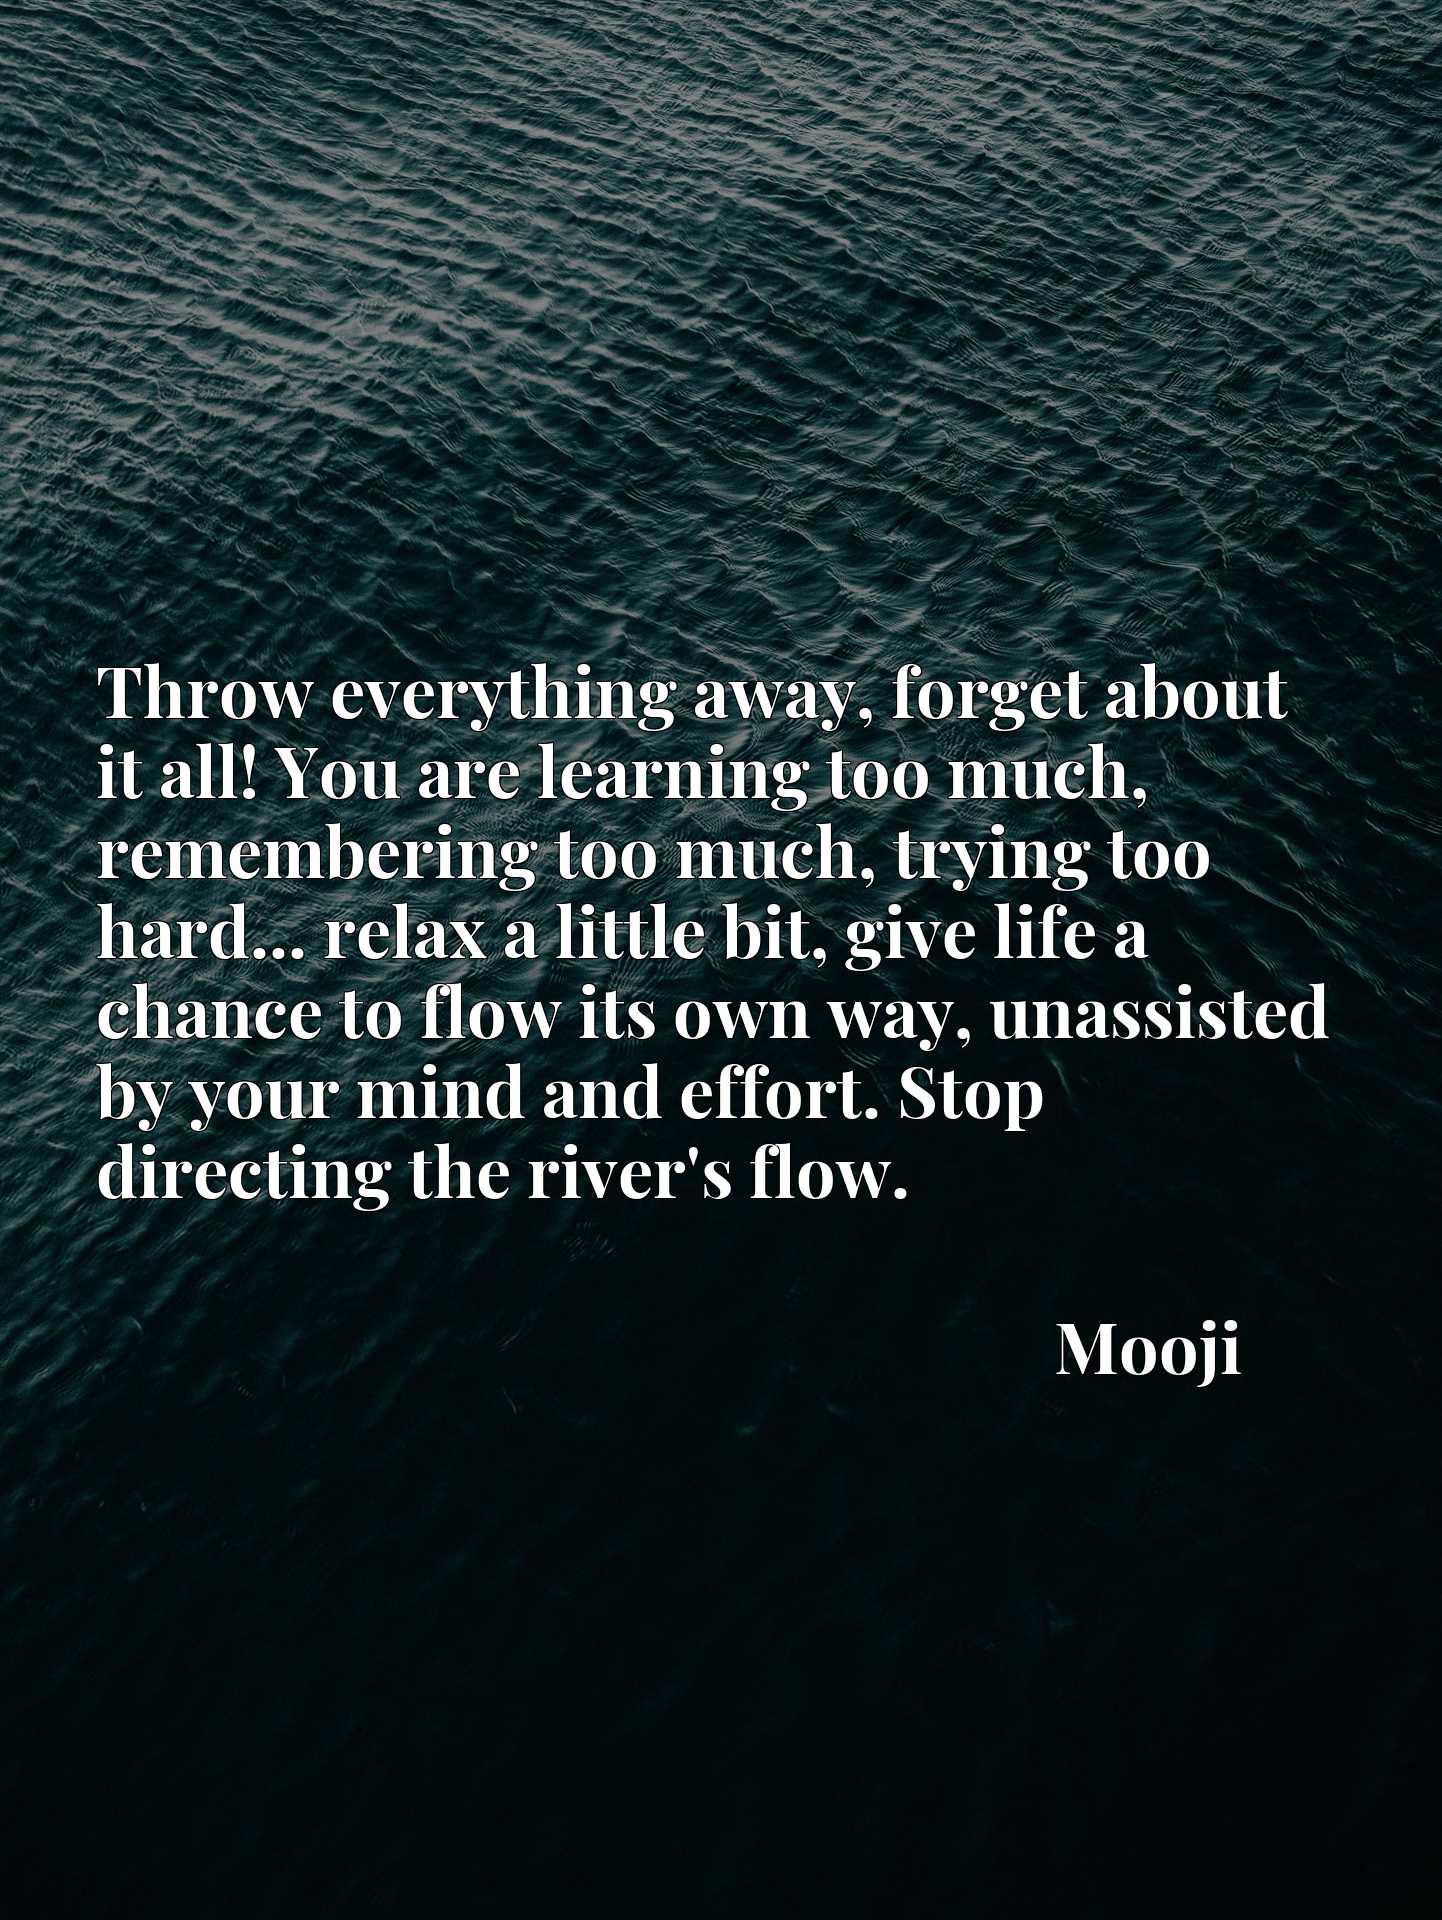 Throw everything away, forget about it all! You are learning too much, remembering too much, trying too hard... relax a little bit, give life a chance to flow its own way, unassisted by your mind and effort. Stop directing the river's flow.